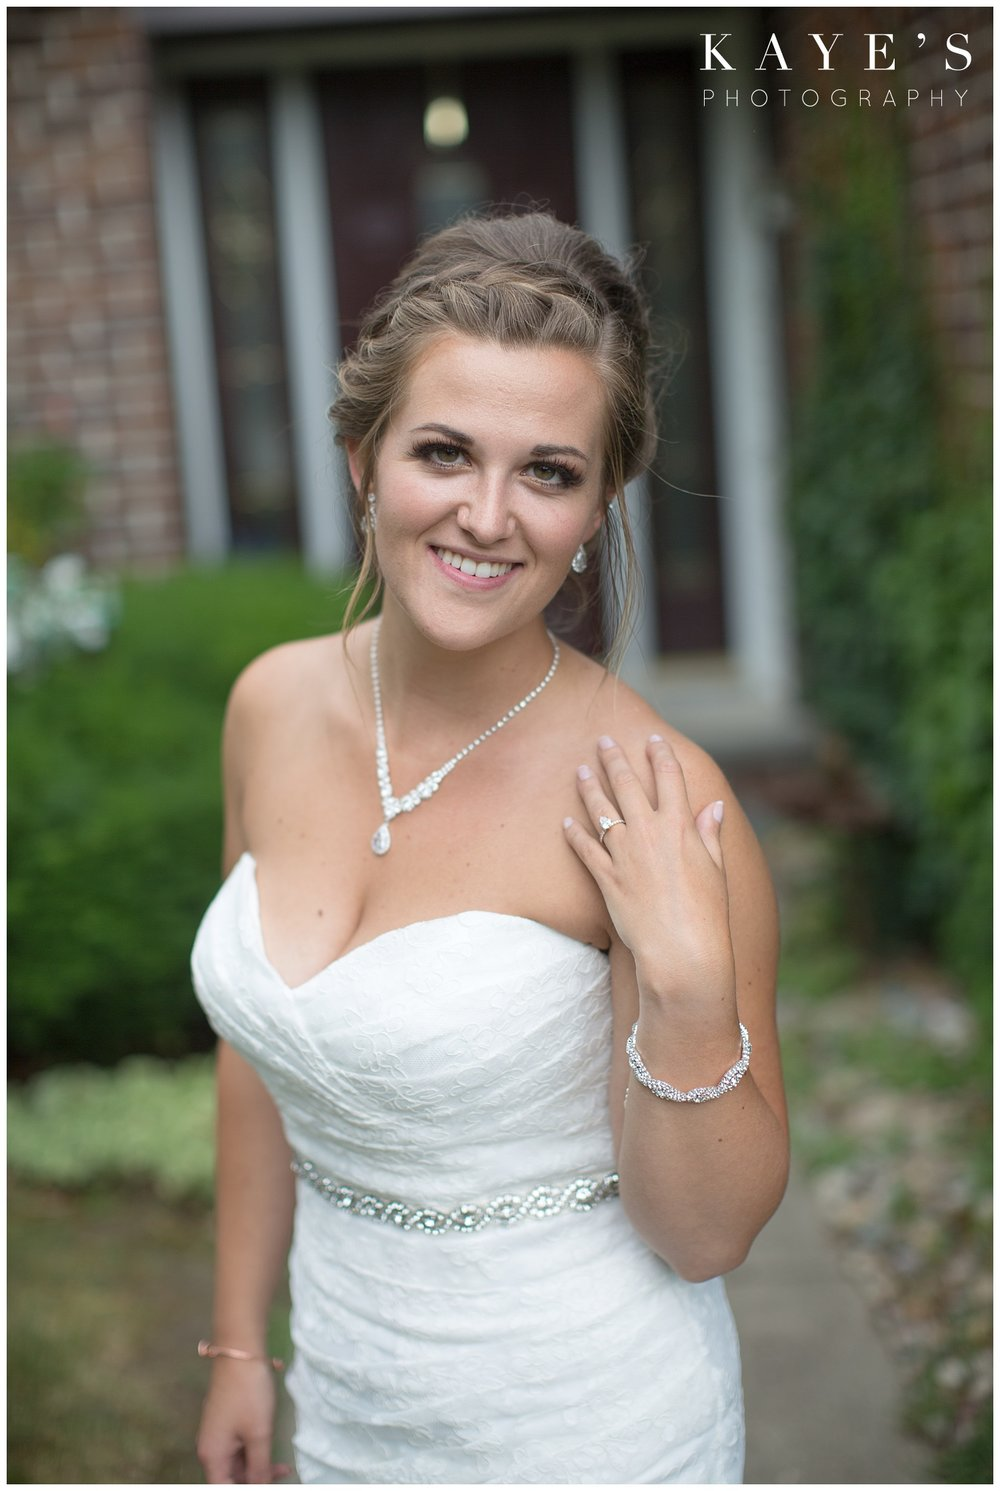 Gorgeous bride posing for professional wedding photographer in Flint Michigan!!